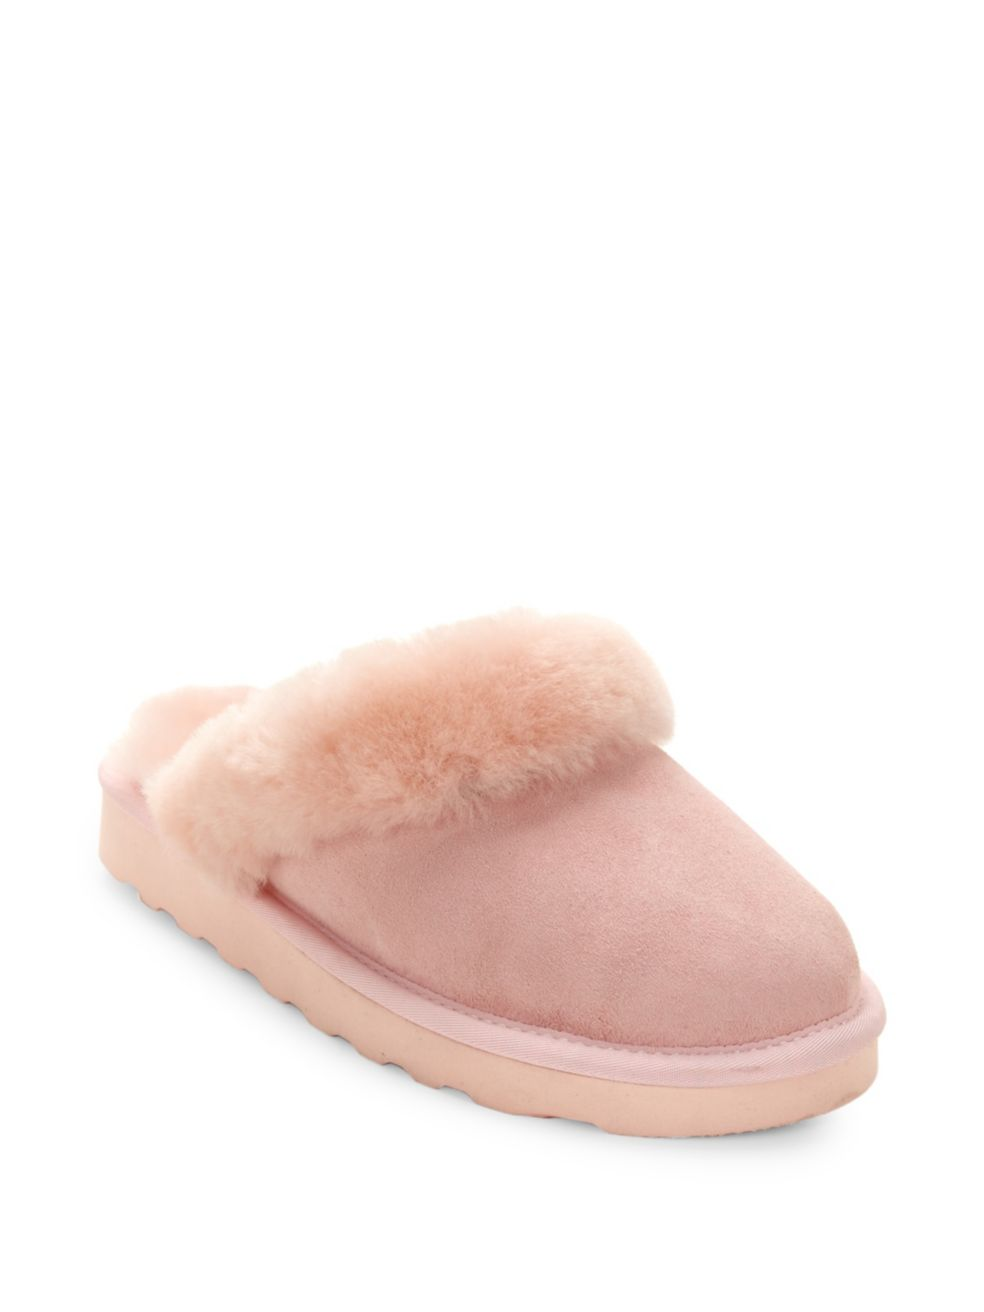 Dyed Shearling Closed Mule Slippers